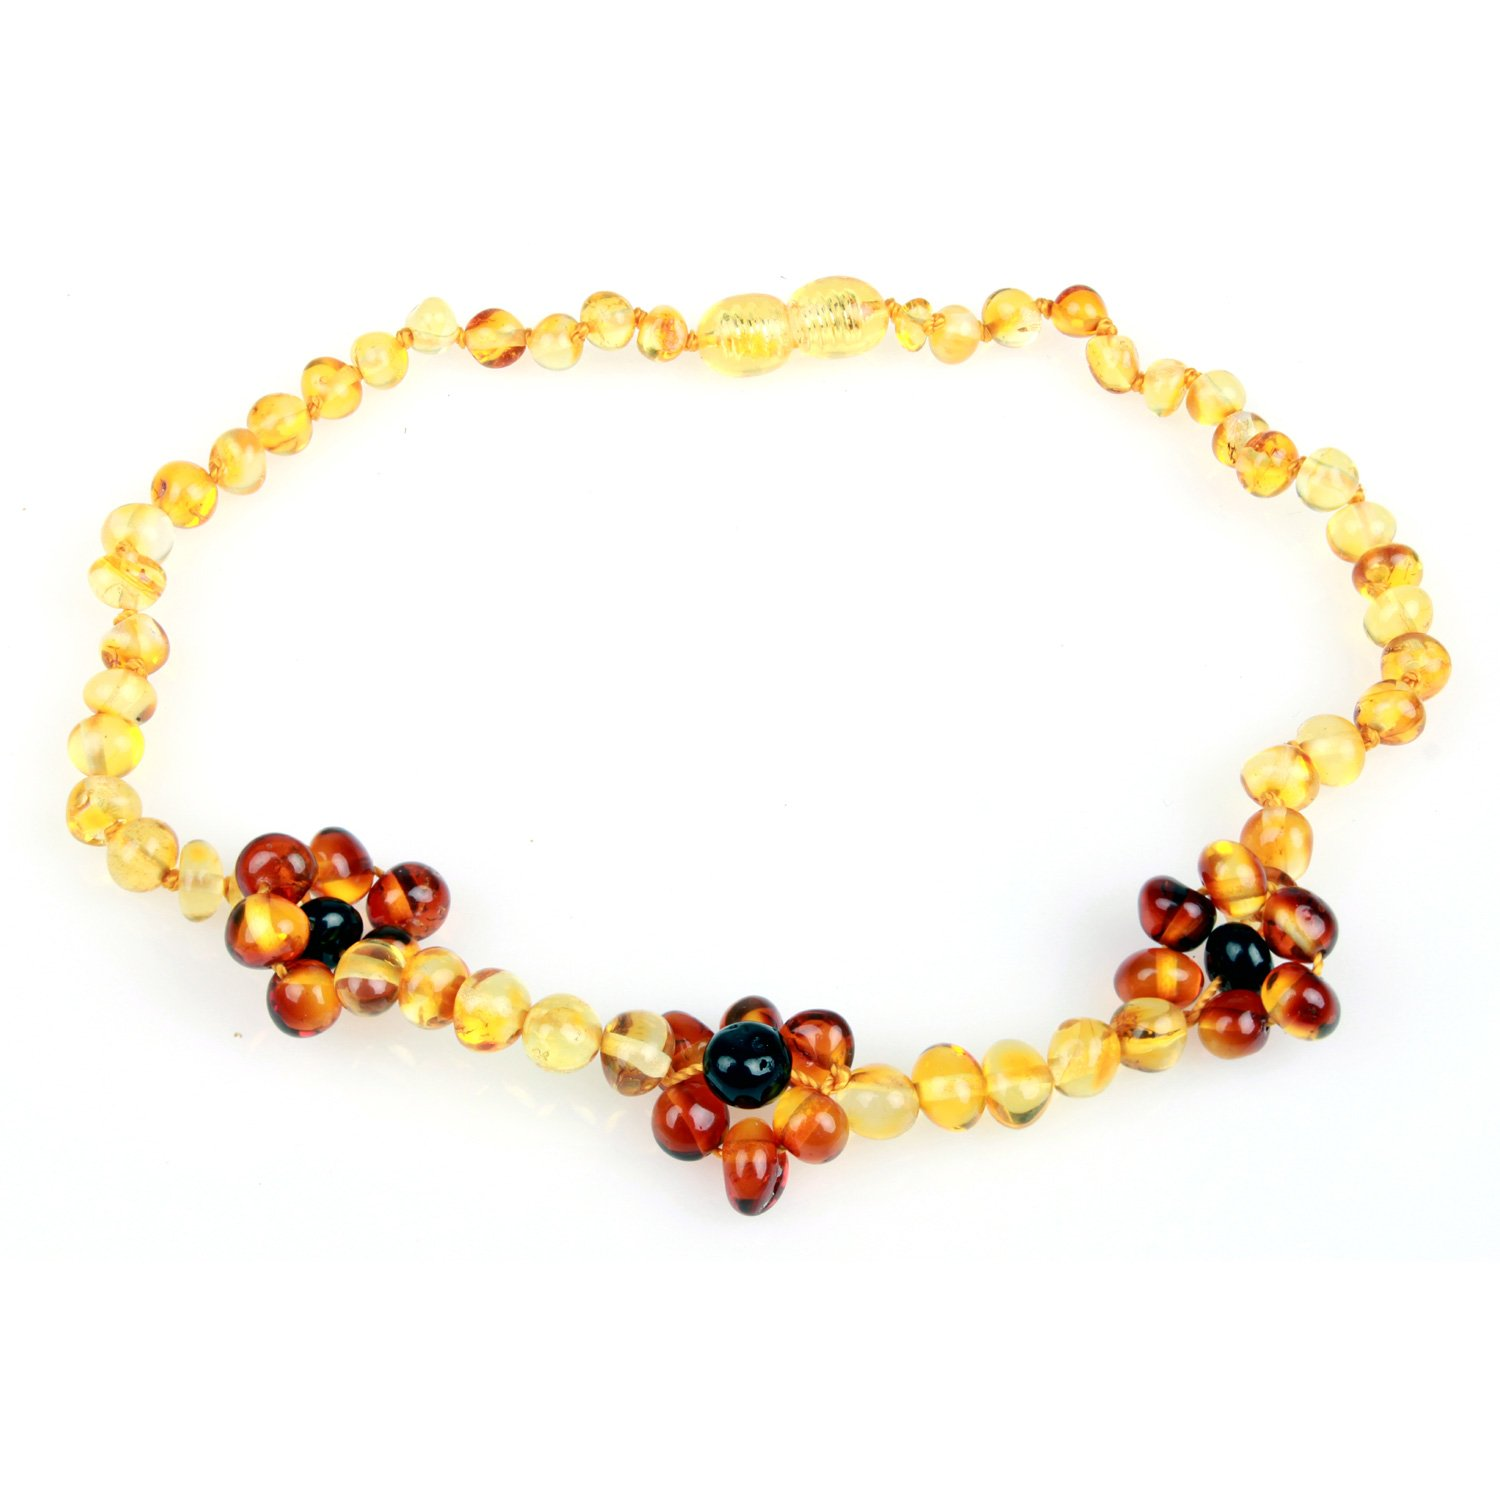 Baltic Amber Teething Necklace - Flower (Unisex, Honey & Cognac Color, 12.5 inches), Handcrafted, 100% USA Lab-Tested Authentic Baltic Amber - All Natural, Soothing Teething Pain Relief